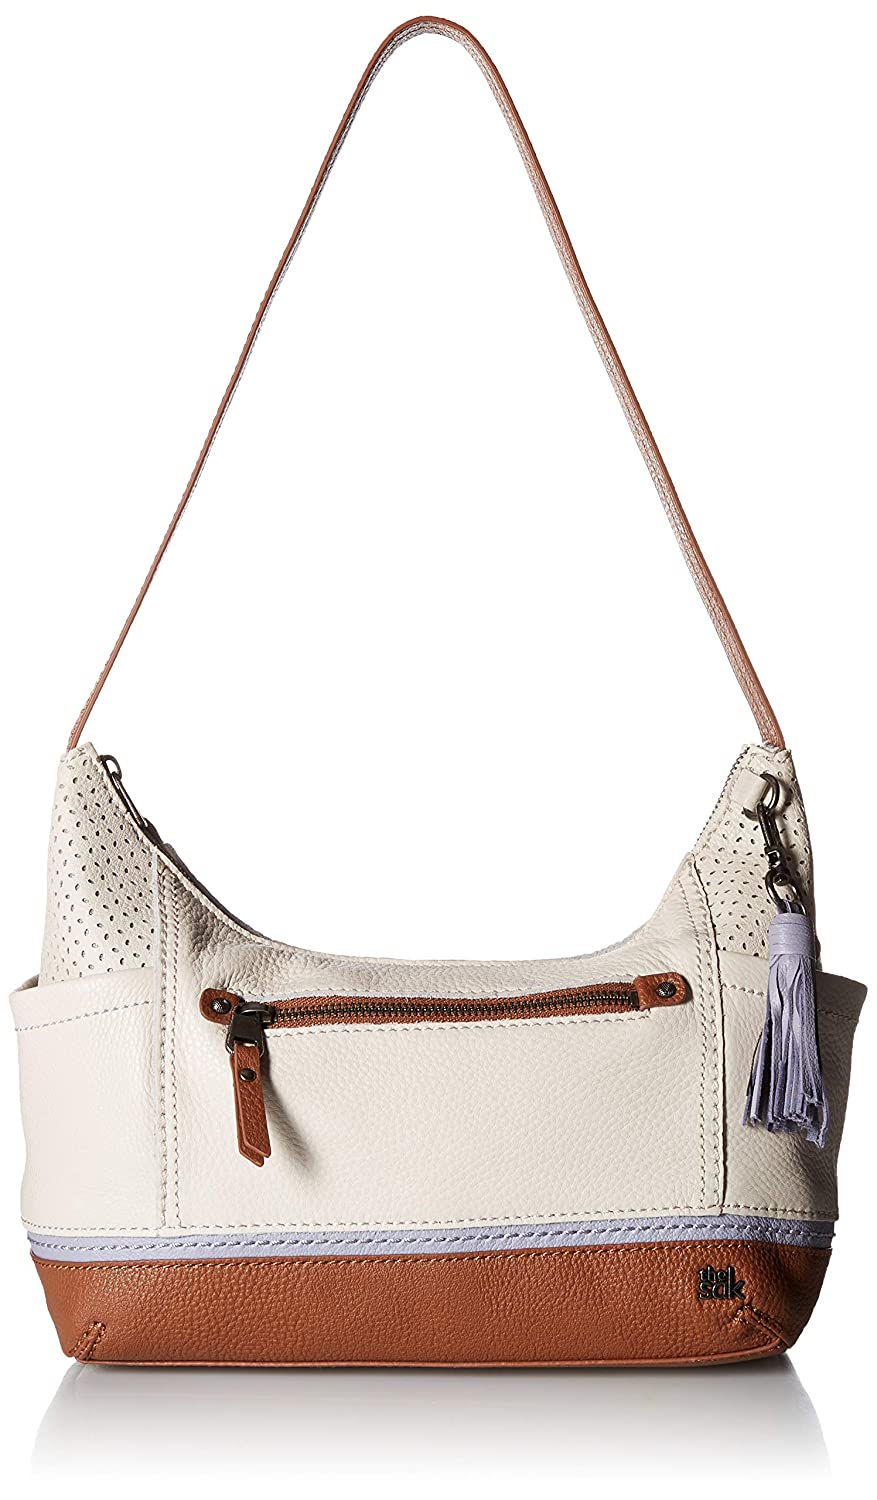 167955f3eb Amazon.com  The Sak Unisex-adults The Kendra Hobo